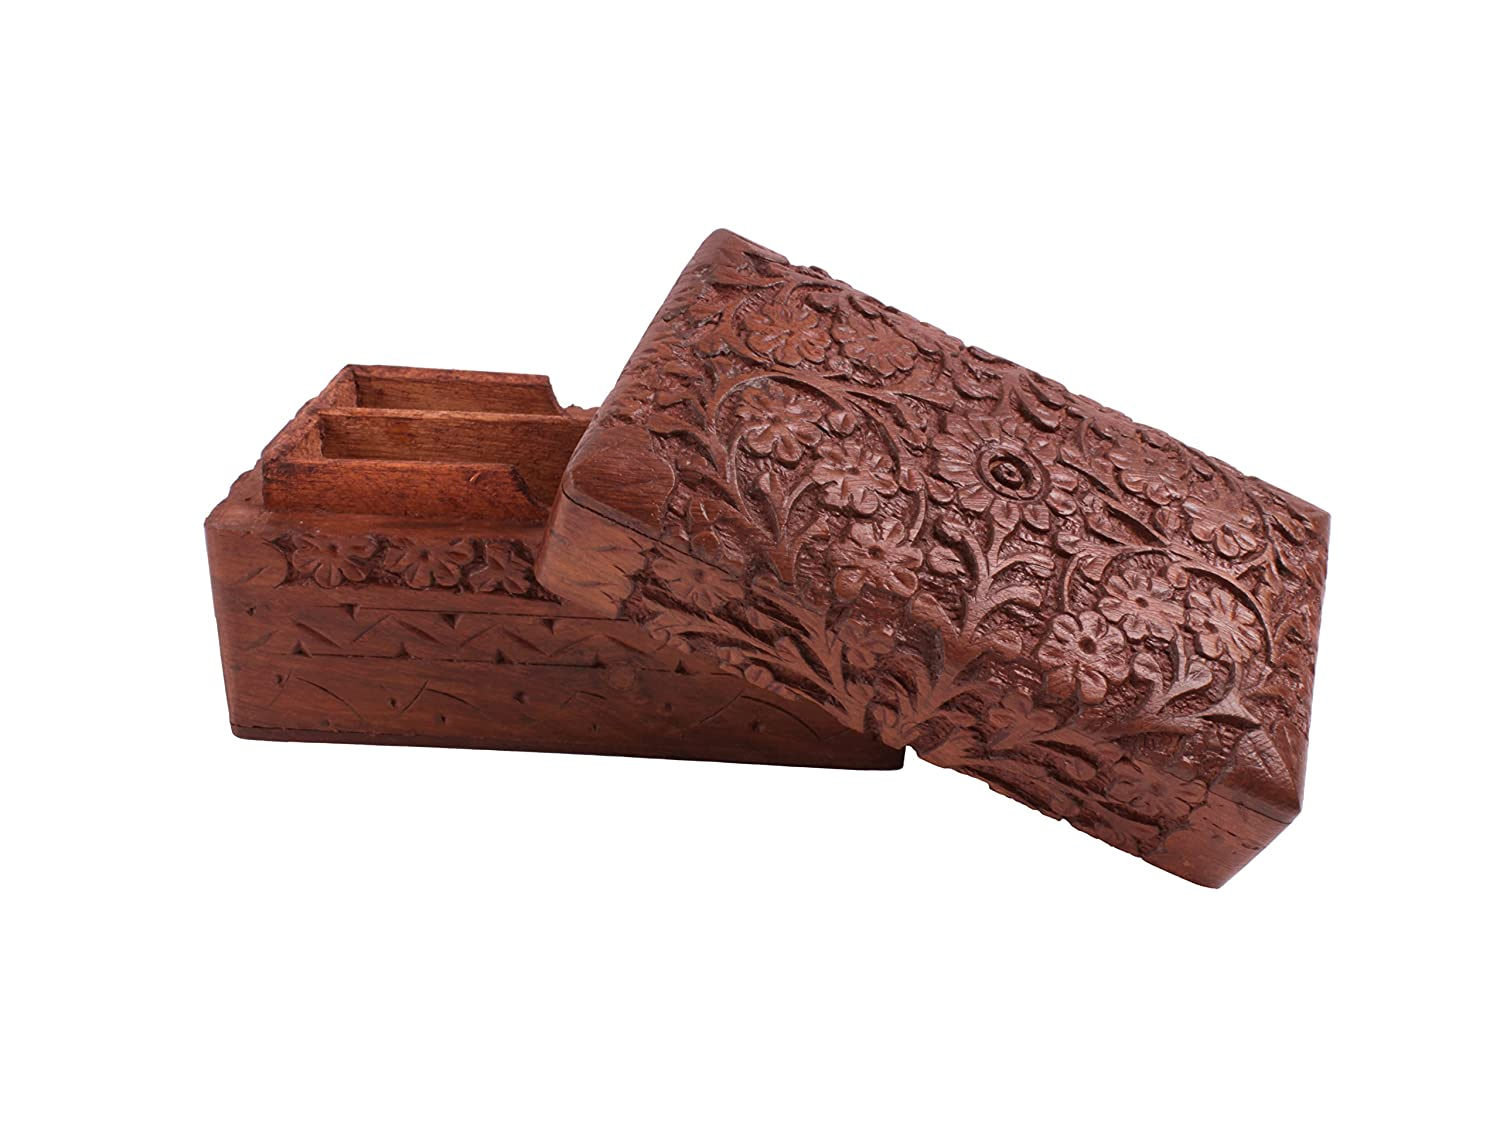 Cheerful Hand Carved Wooden Decorative Playing Card Box (12 X 7 X 7) Cm With Floral Carvings Store Indya